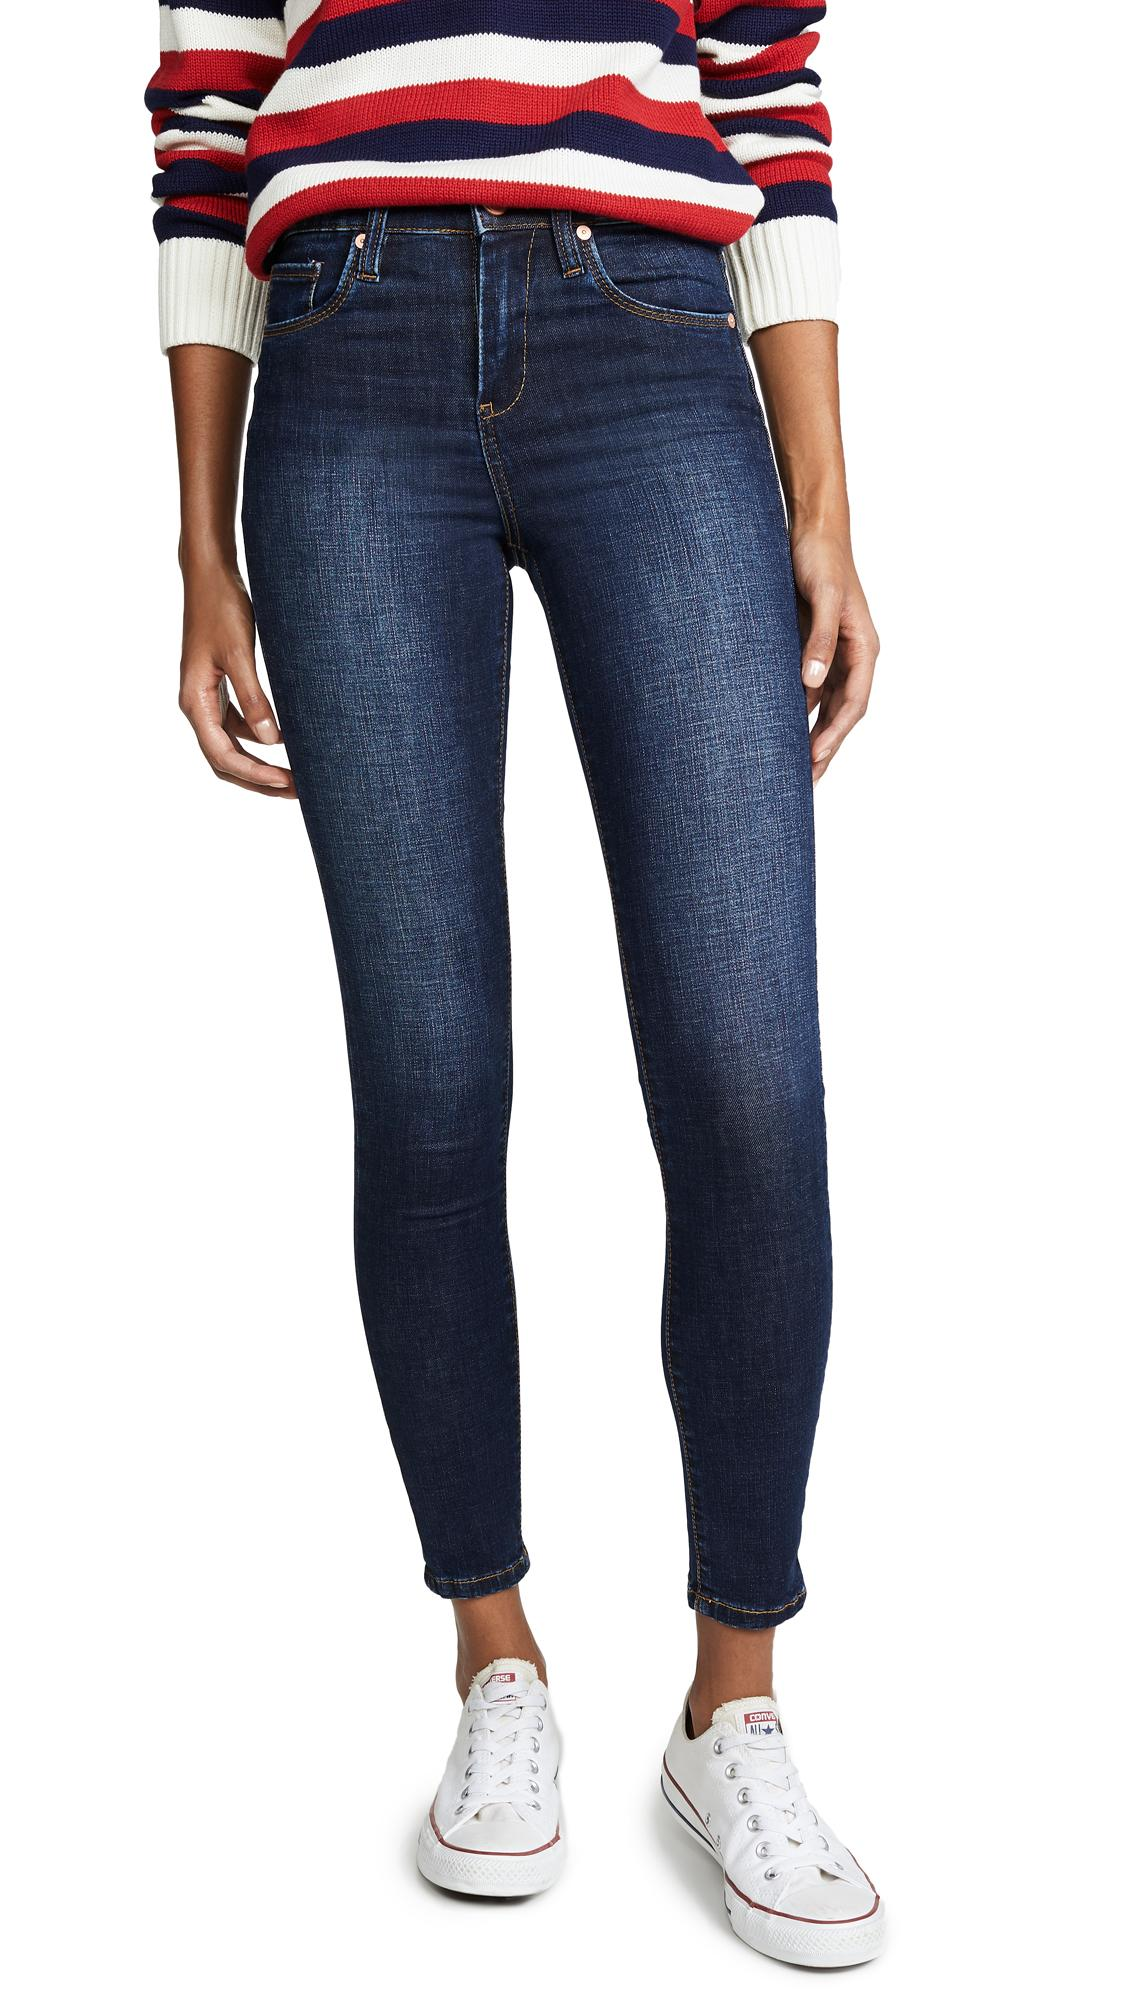 Blank Denim The Great Jones High Rise Skinny Jeans In The Misfit Wash